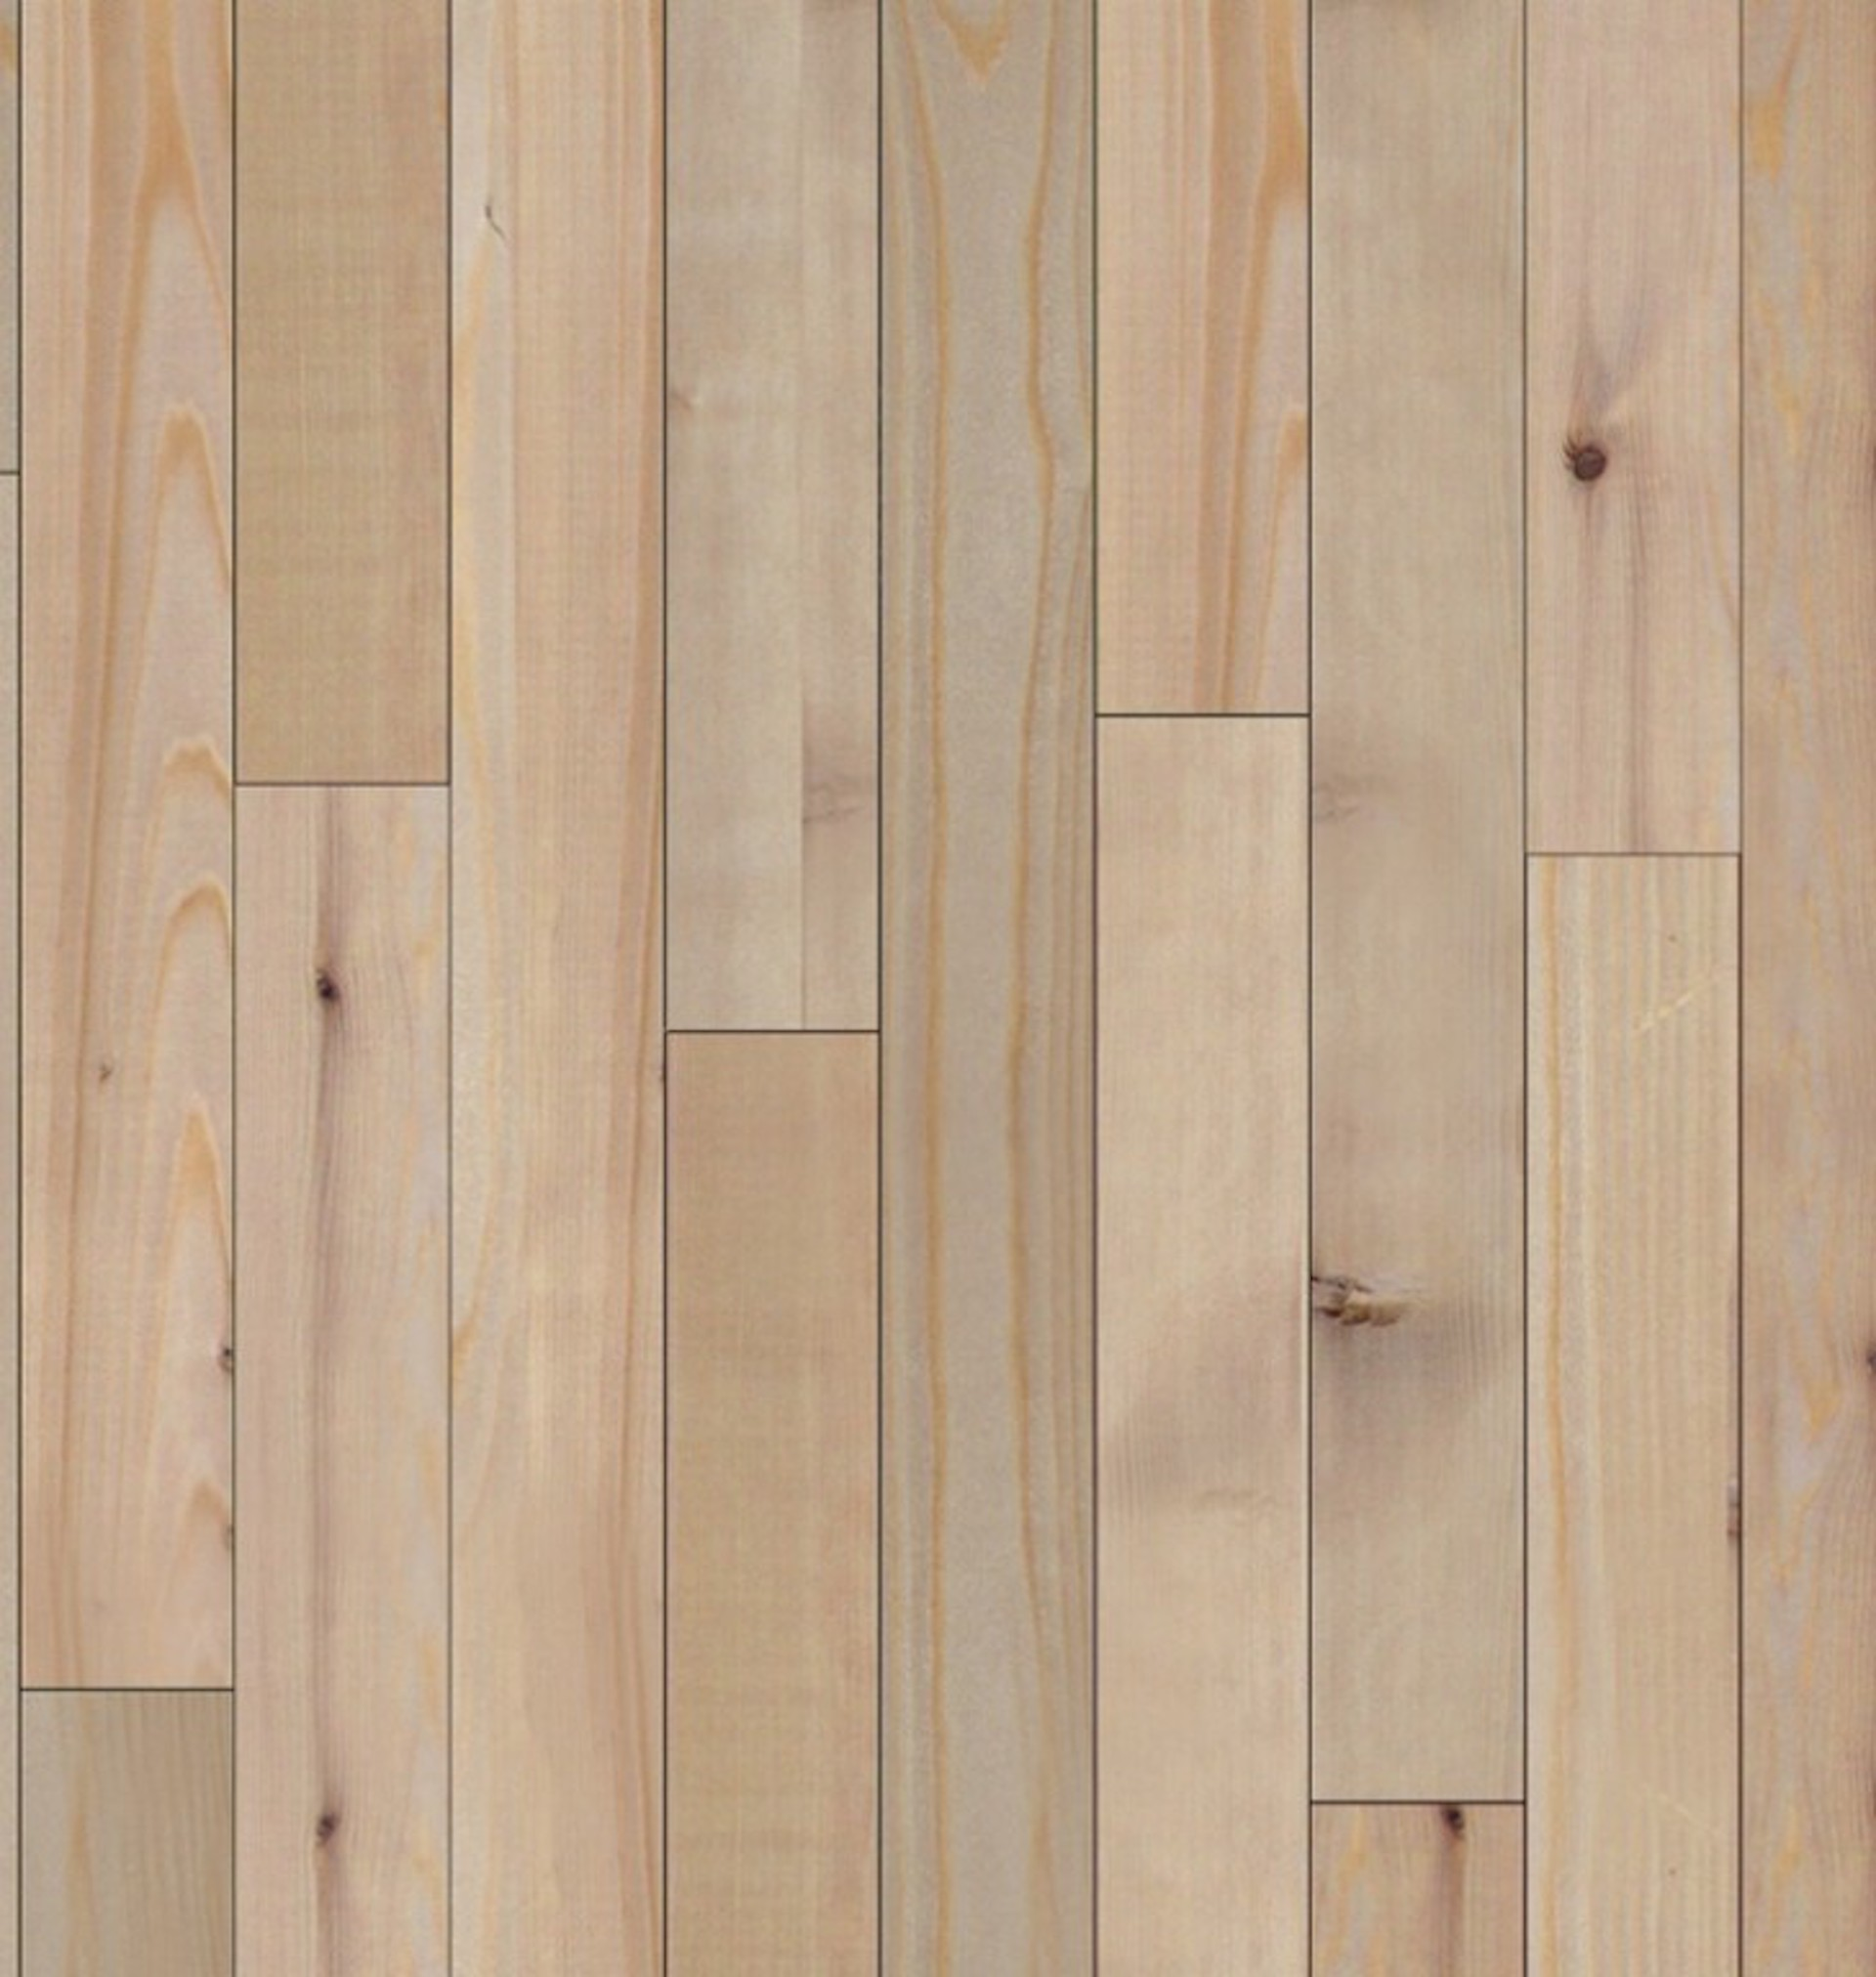 Wood plank - Textures - Download - C4Dzone